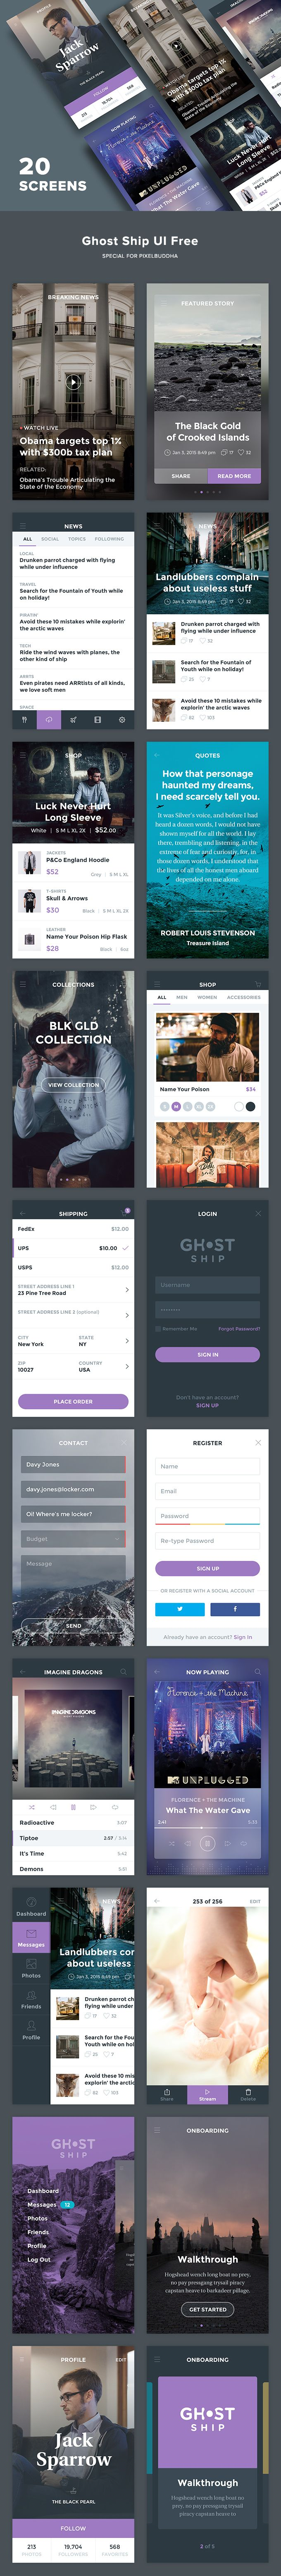 10 Best Free Flat iOS UI Kits for Mobile Designers